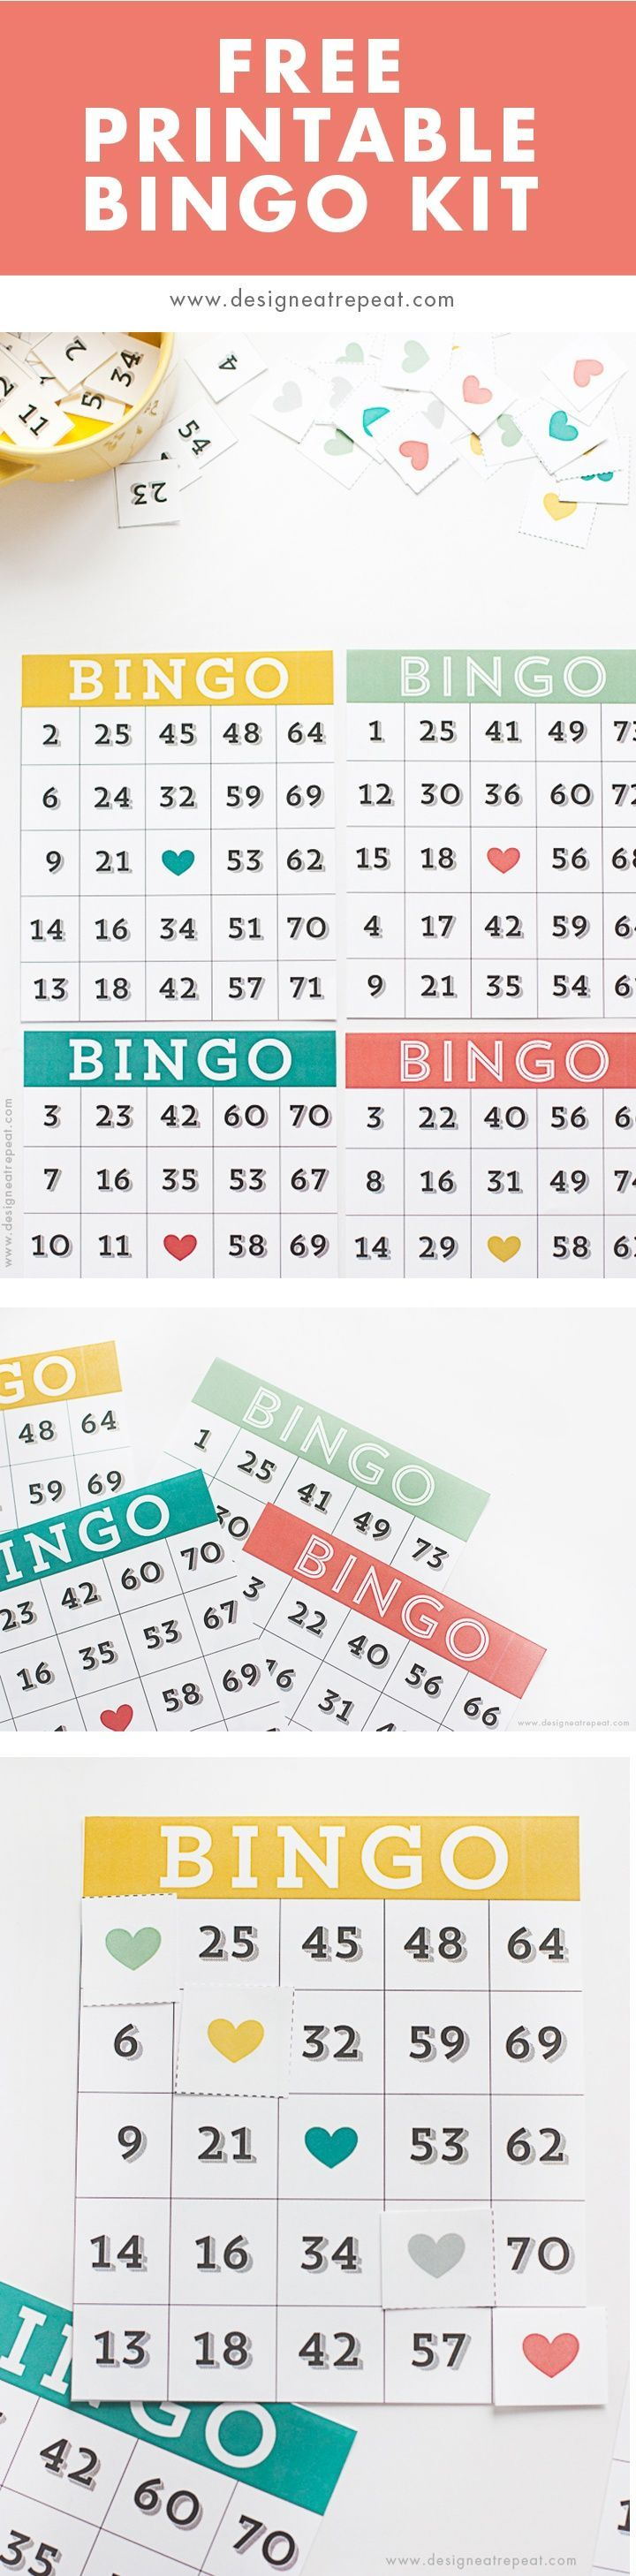 90s trivia questions looking for a free family game night idea this printable bingo set is